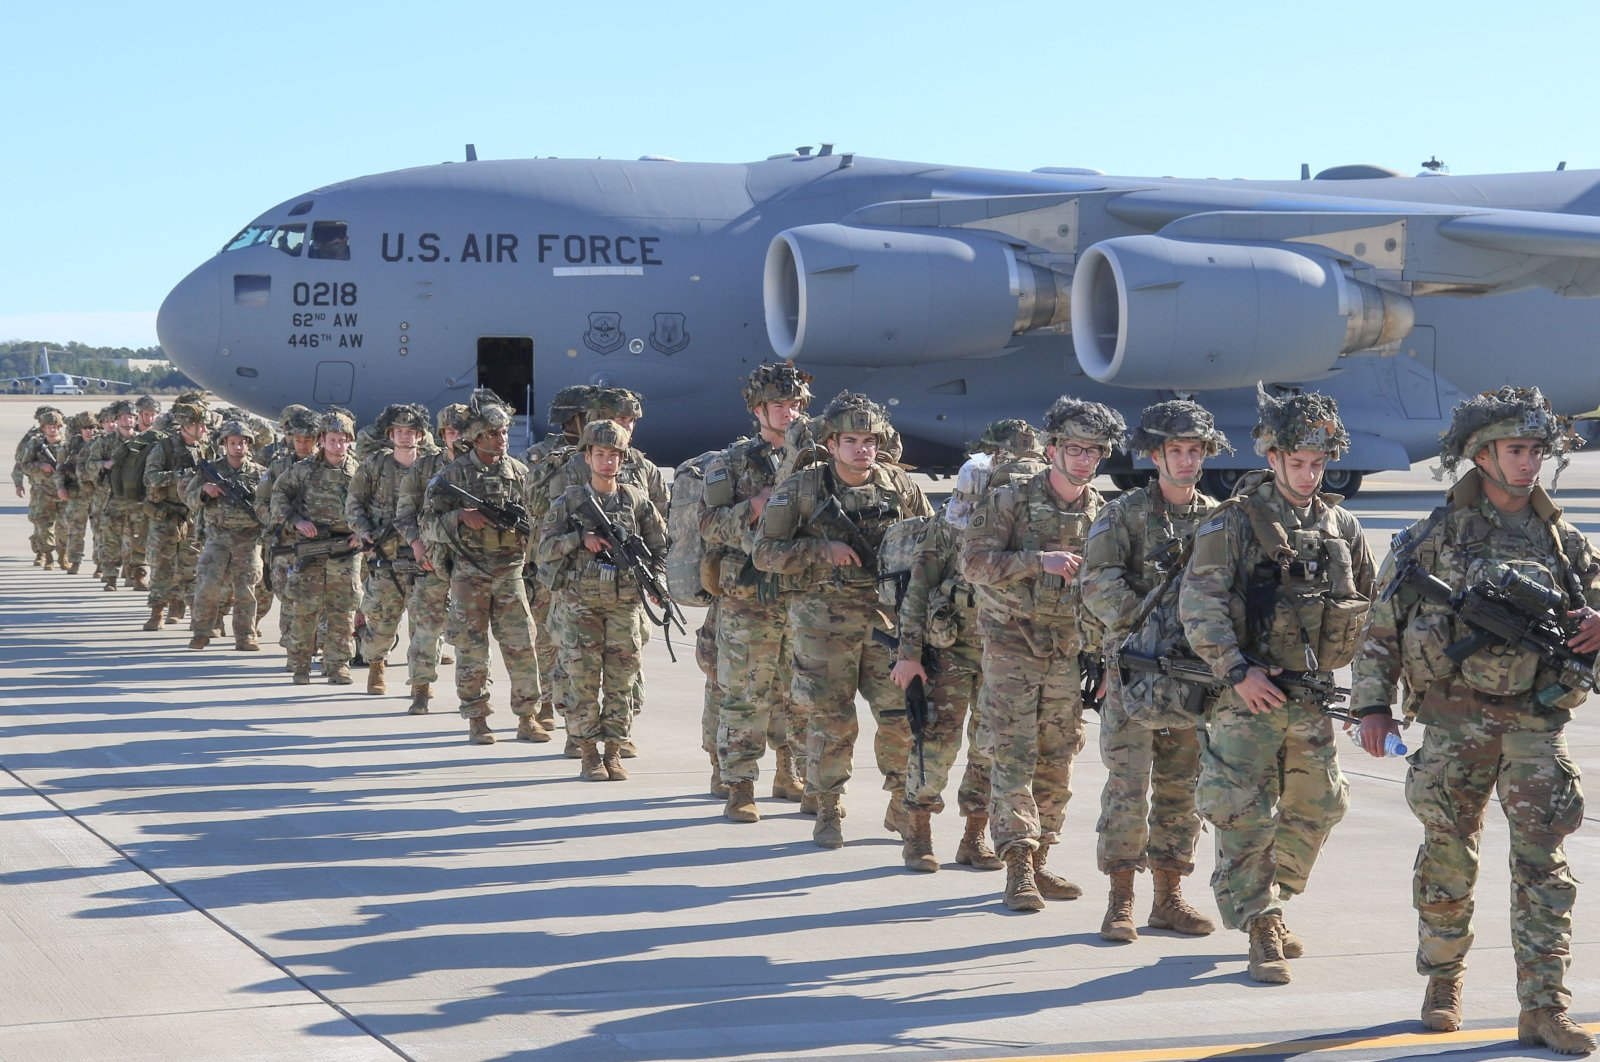 This handout picture released by the US Army shows U.S. Army Paratroopers assigned to the 2nd Battalion, 504th Parachute Infantry Regiment, 1st Brigade Combat Team, 82nd Airborne Division, deploy from Pope Army Airfield, North Carolina, U.S., Jan. 1, 2020. (US Army via AFP)